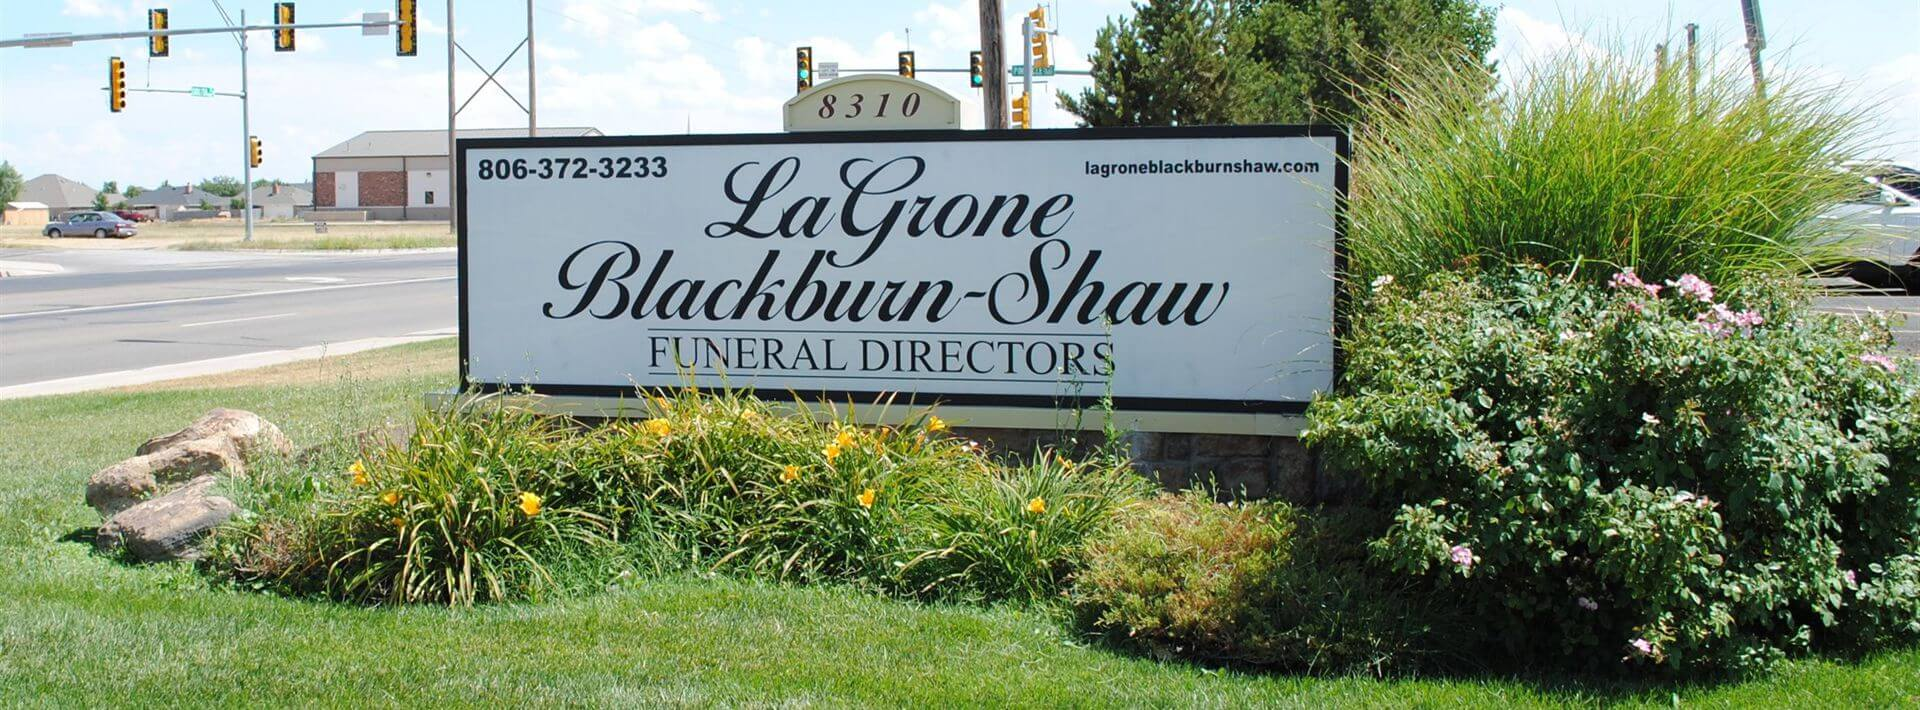 Funeral home in